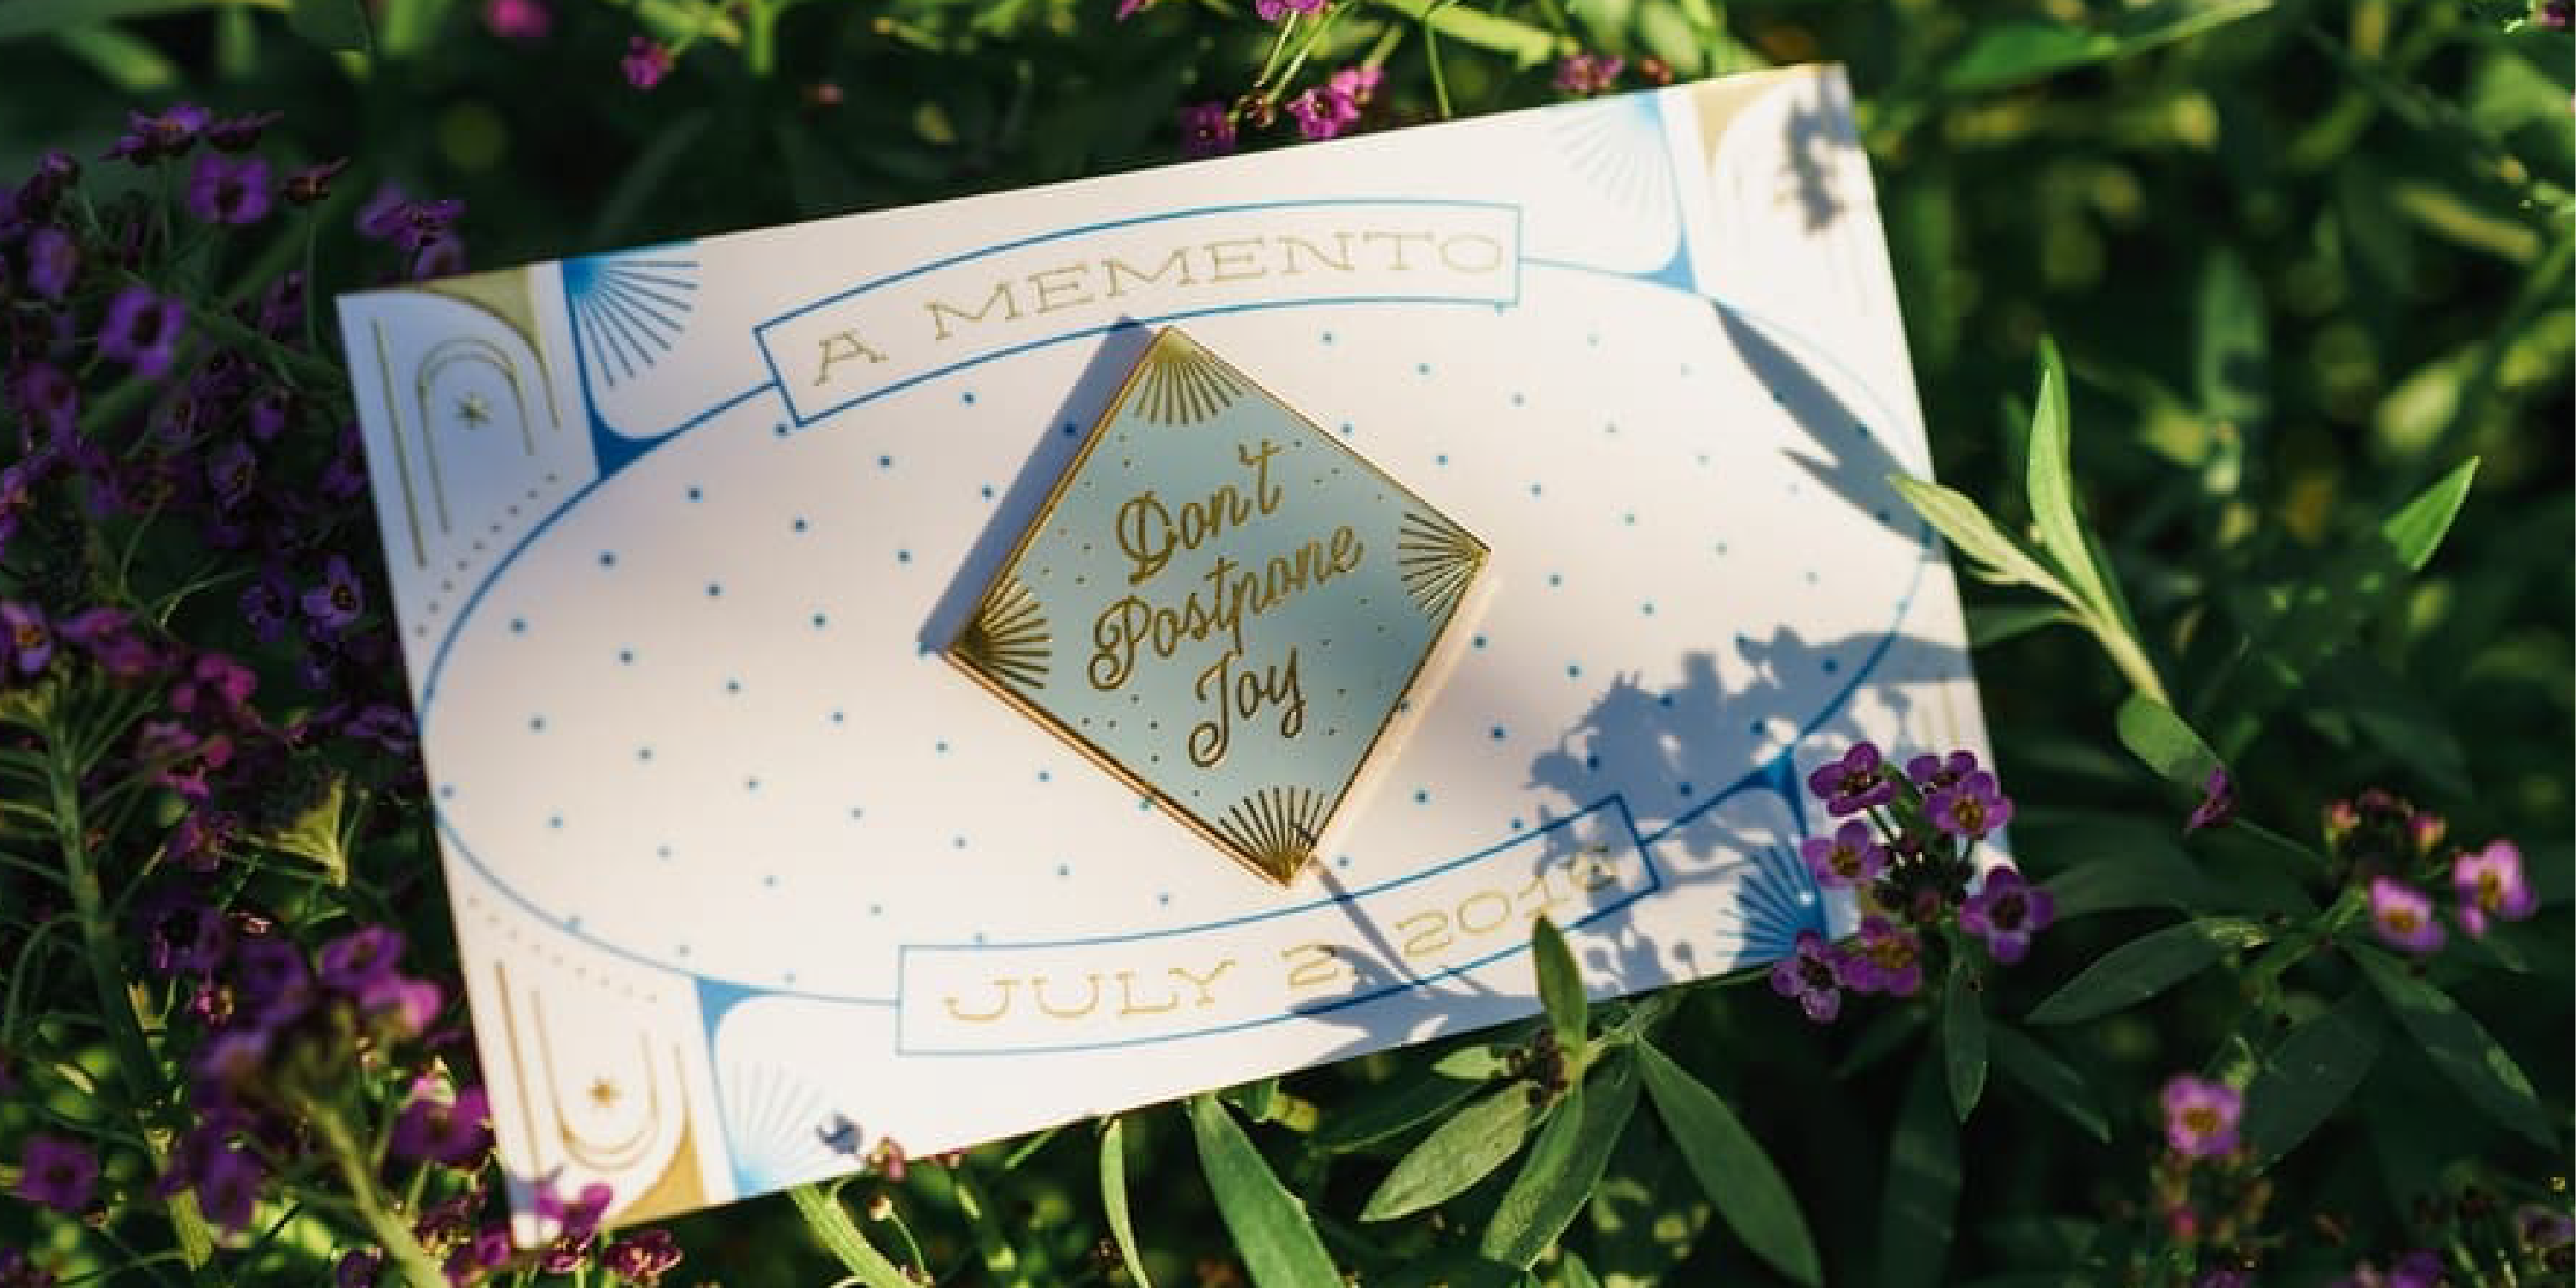 "There is a lapel pin pinned to a card. The card is sitting in lush greenery. The lapel pin is diamond shaped and light blue. The text on it reads ""Don't Postpone Joy."""